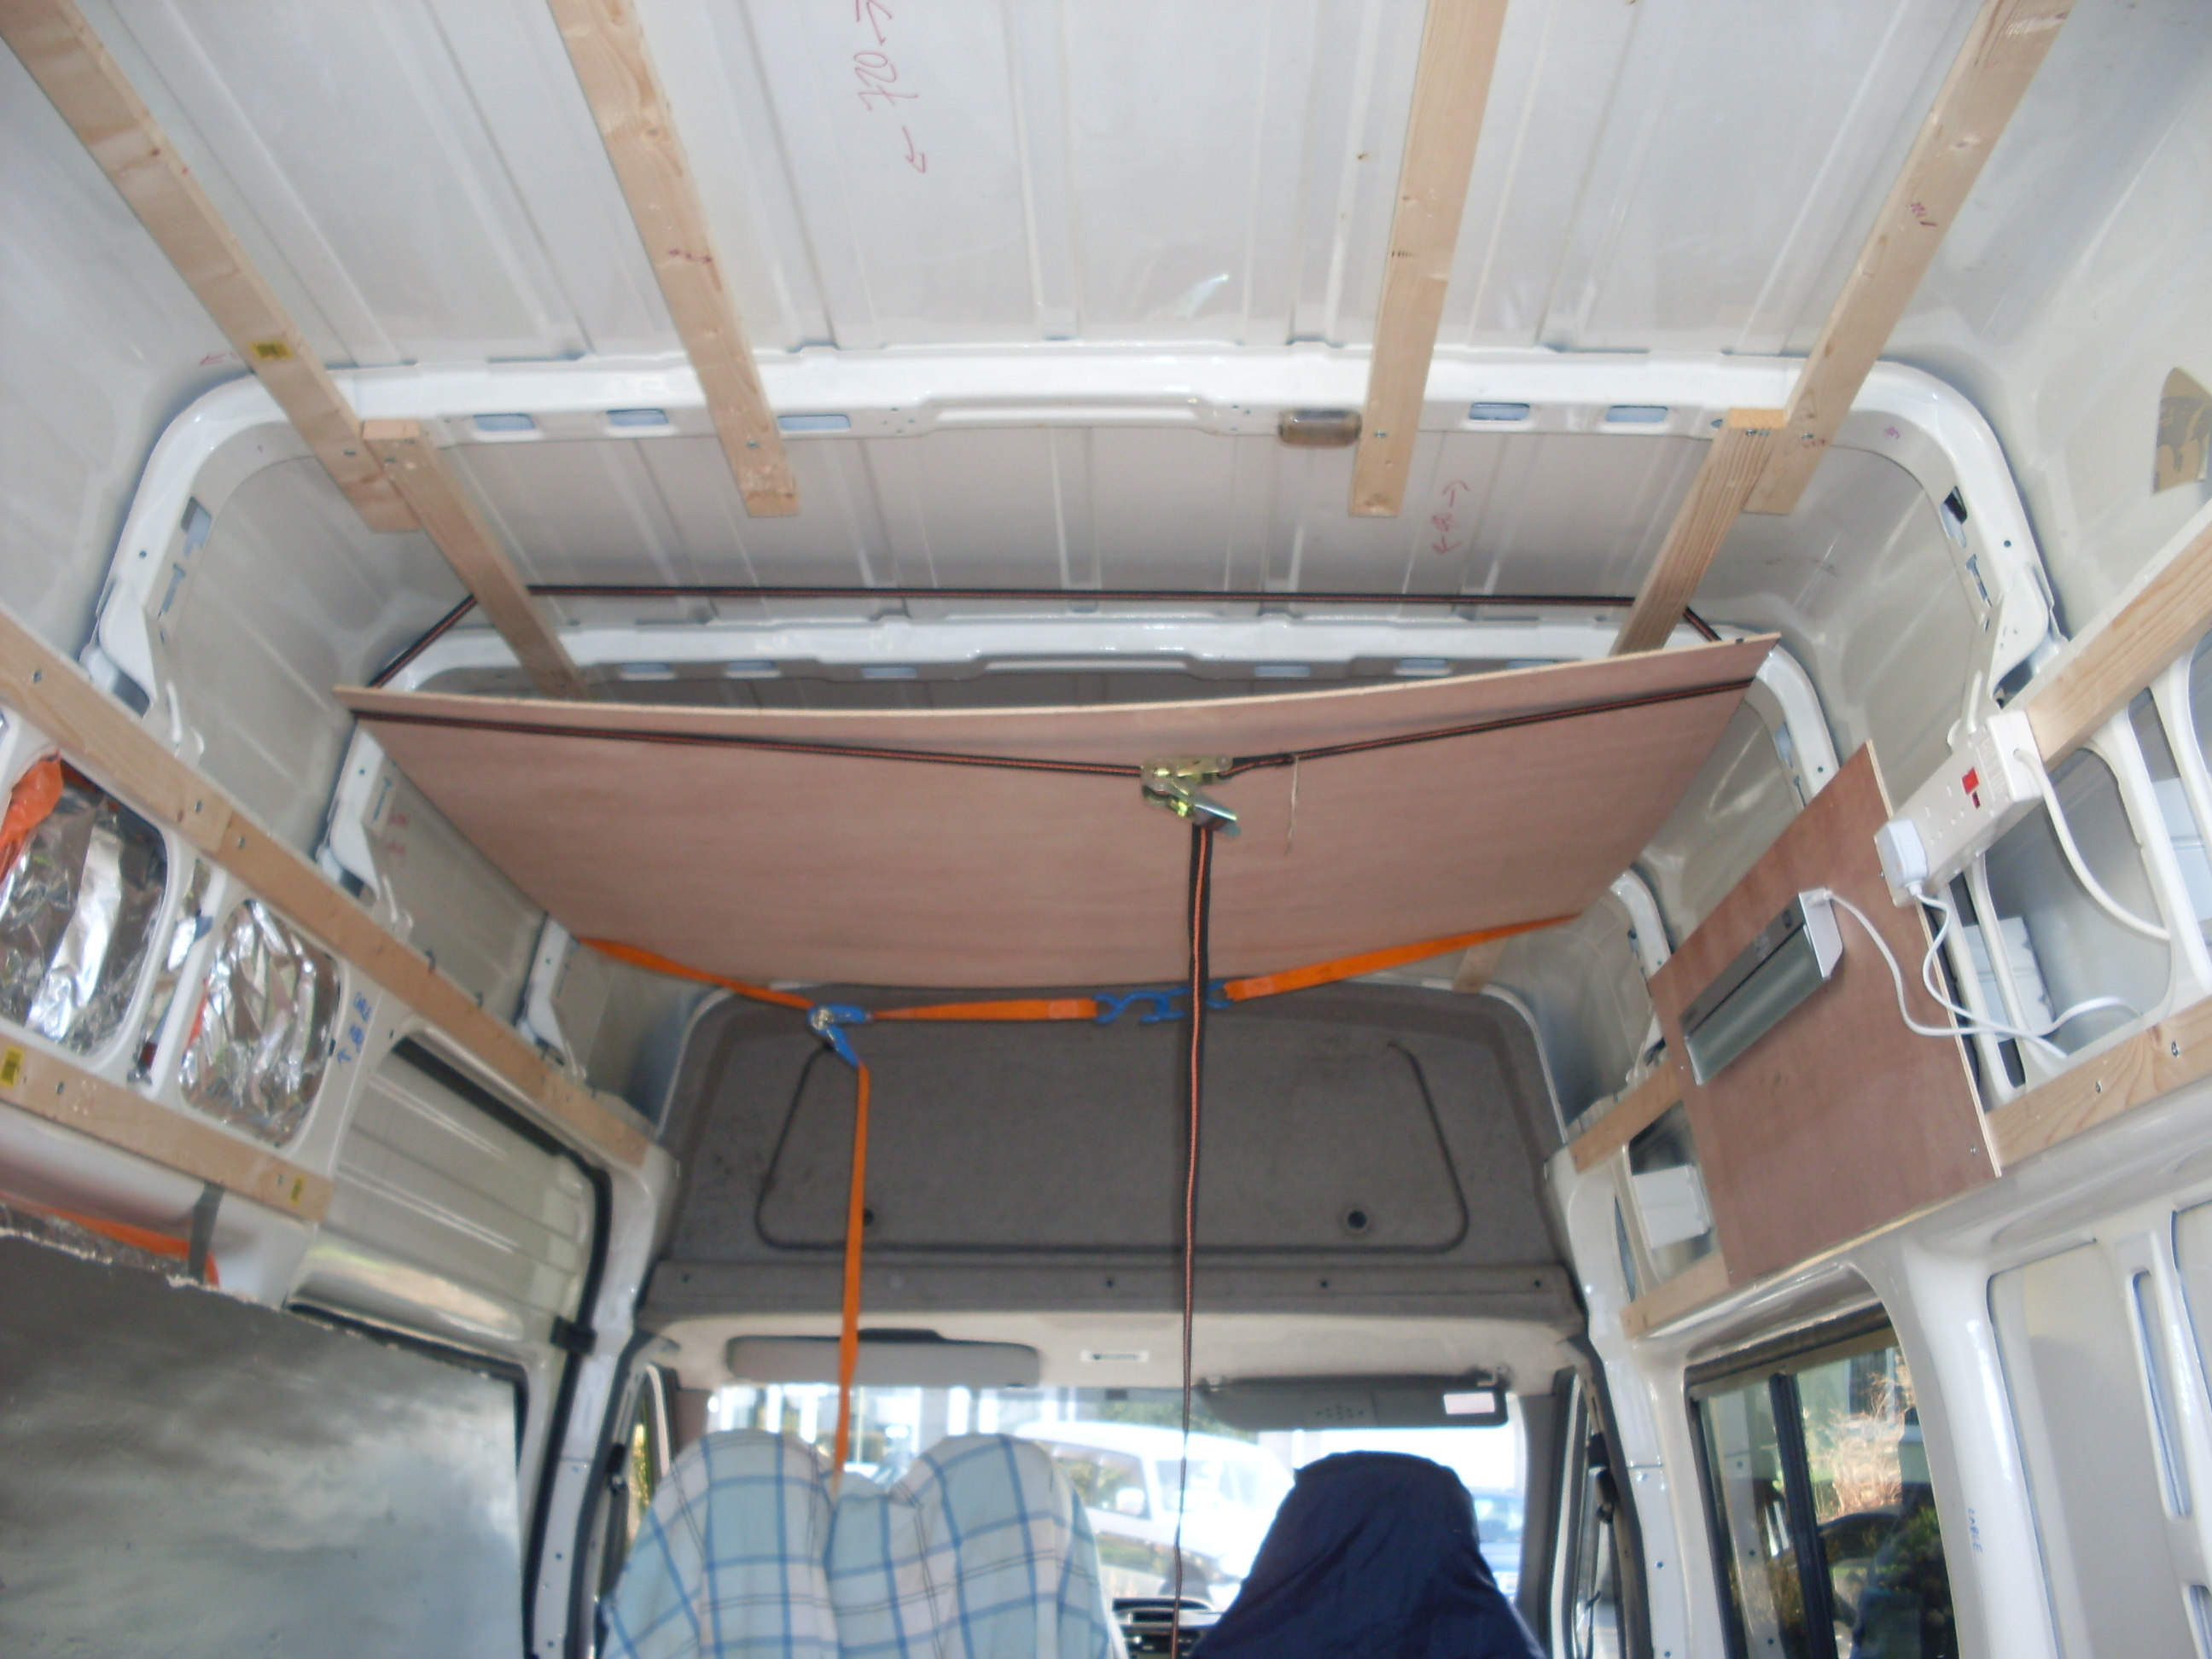 Insulating And Battening The Ford Transit Campervan